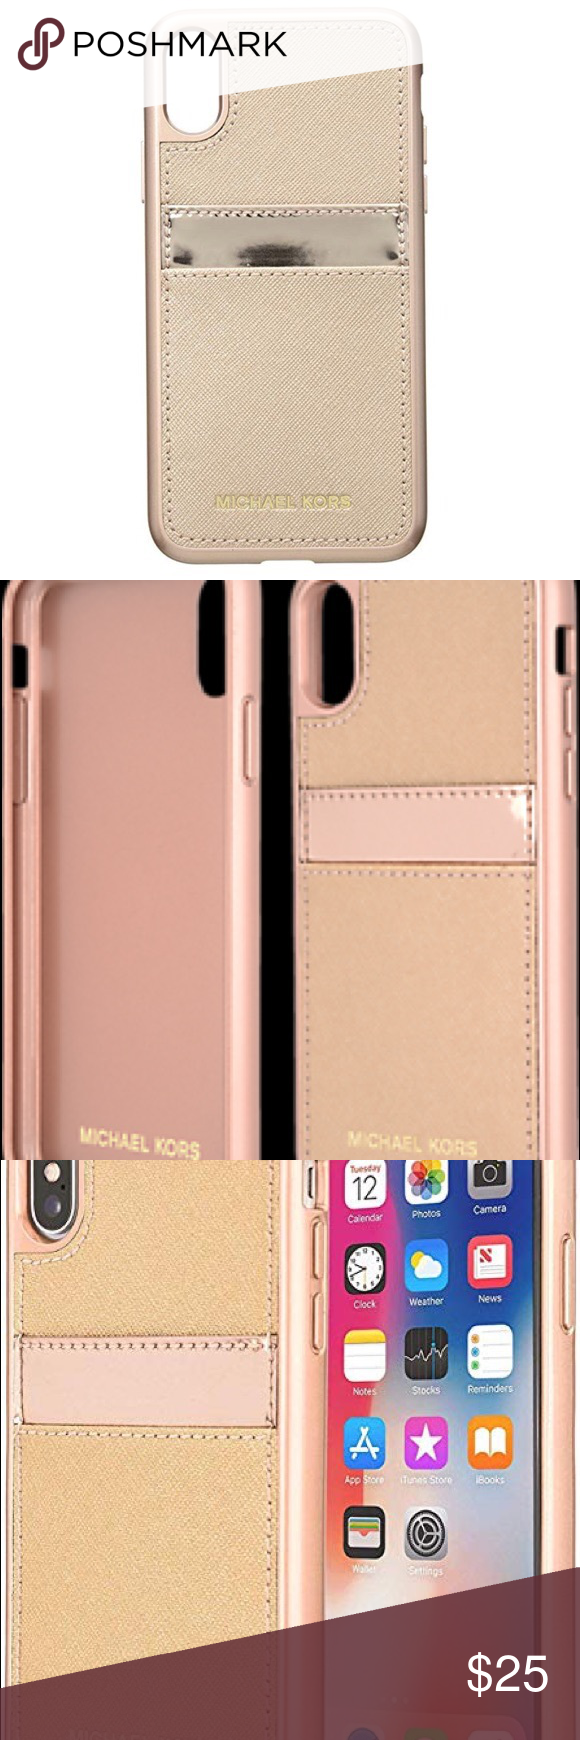 950aa69aff2283 Michael Kors iPhone X Case in Rose Gold Wrap your phone in luxury with this  chic Pocket Case for your iPhone X. - Crafted from genuine Saffiano leather  ...